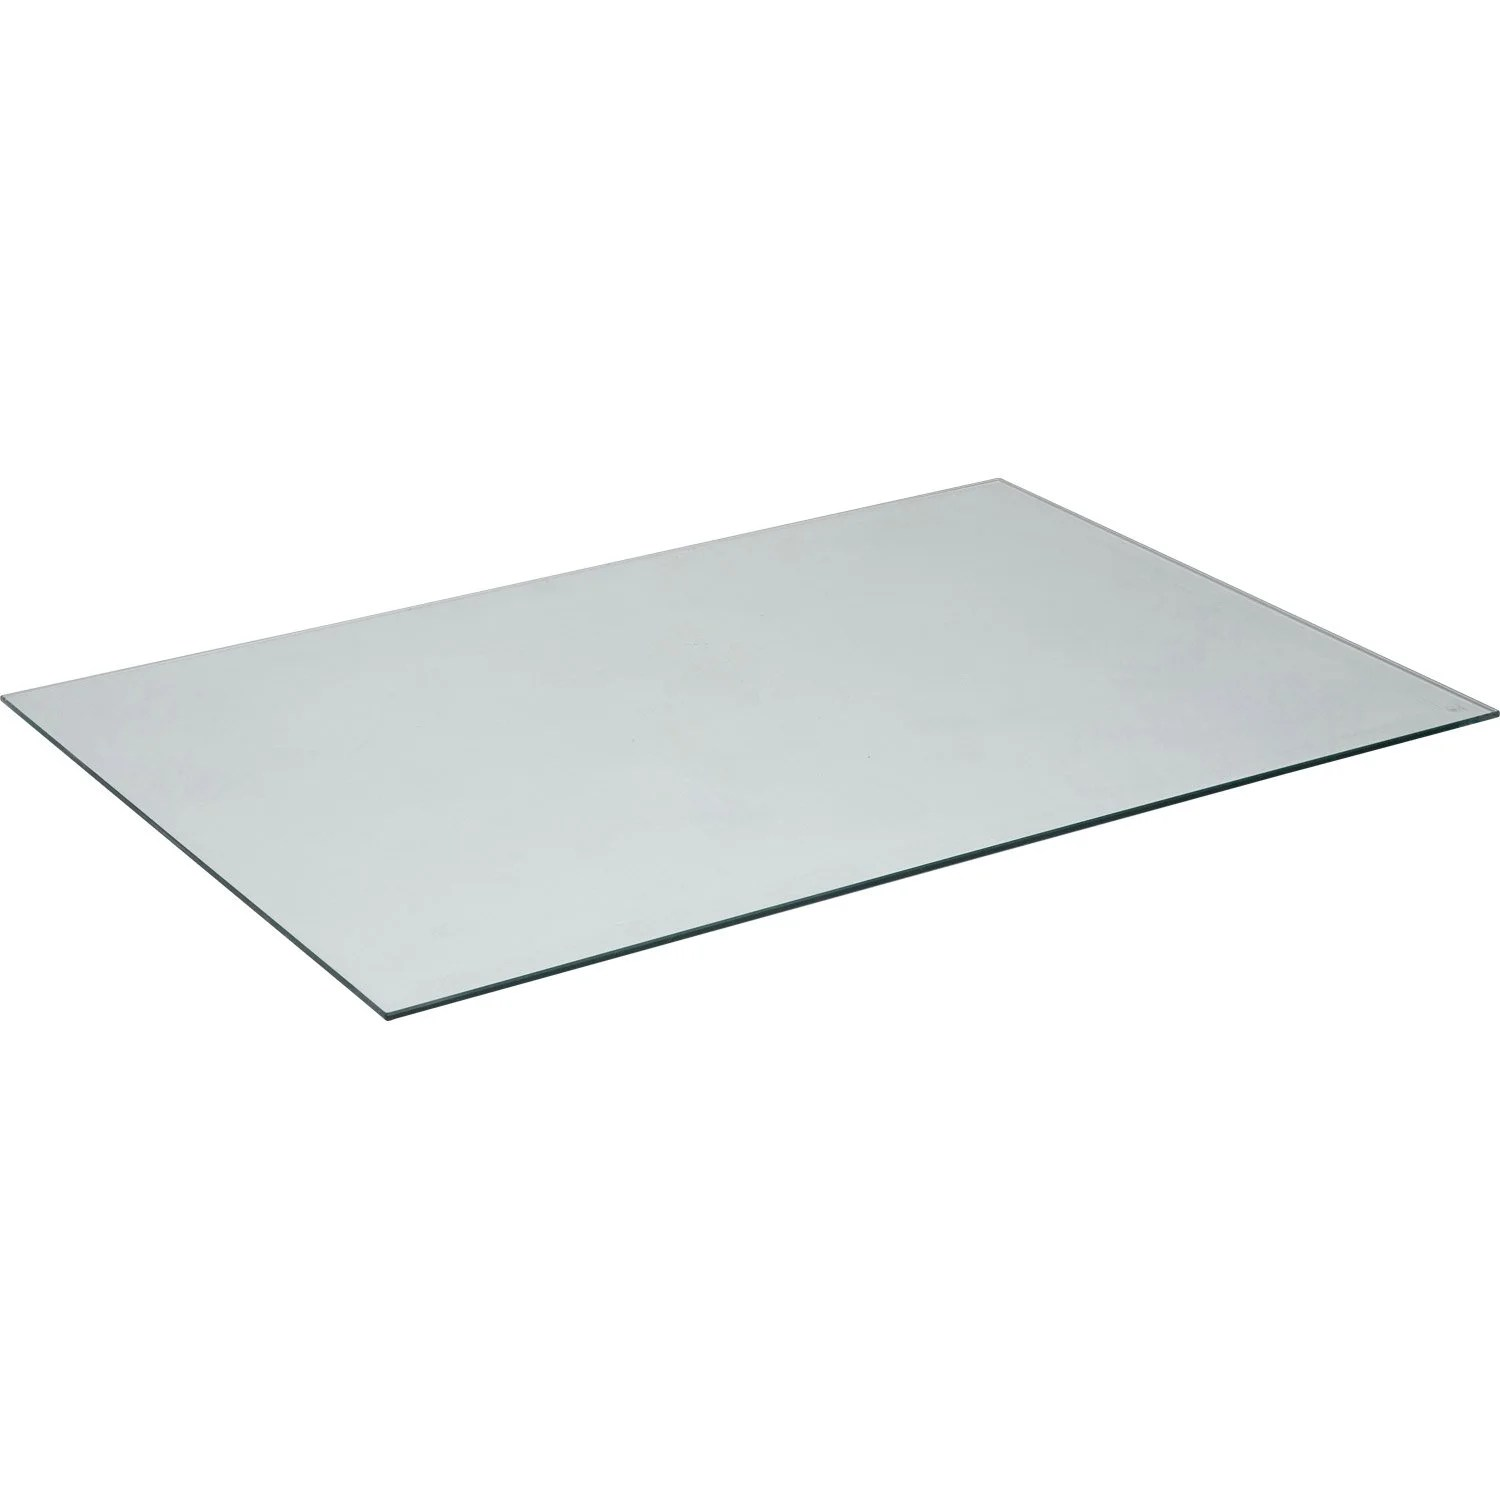 Verre Protection Table Plateau De Table Verre L 140 X L 72 Cm X Ep 8 Mm